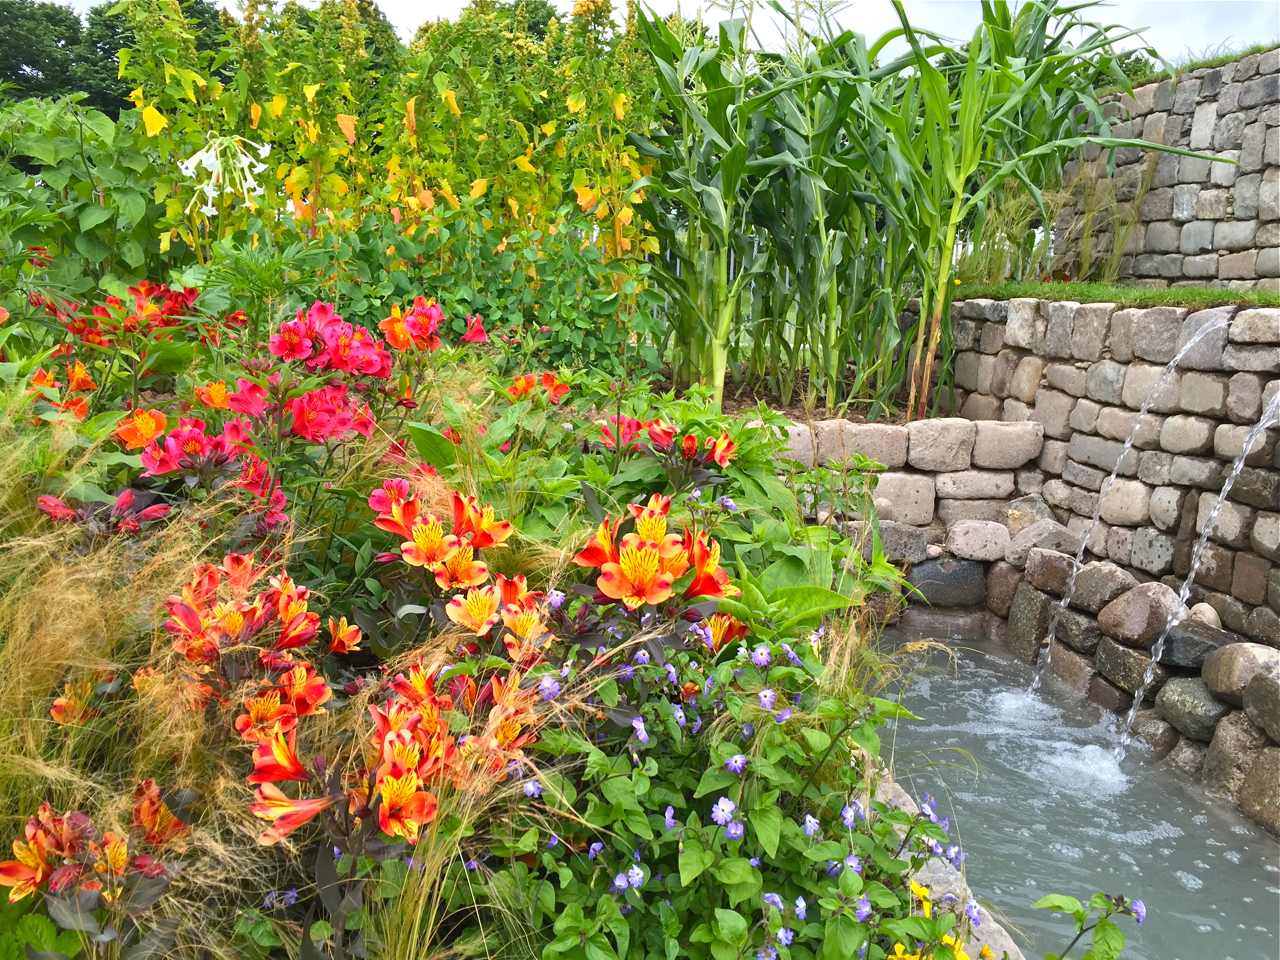 The Inca Garden has an edible section but the Peruvian lilies steal the show